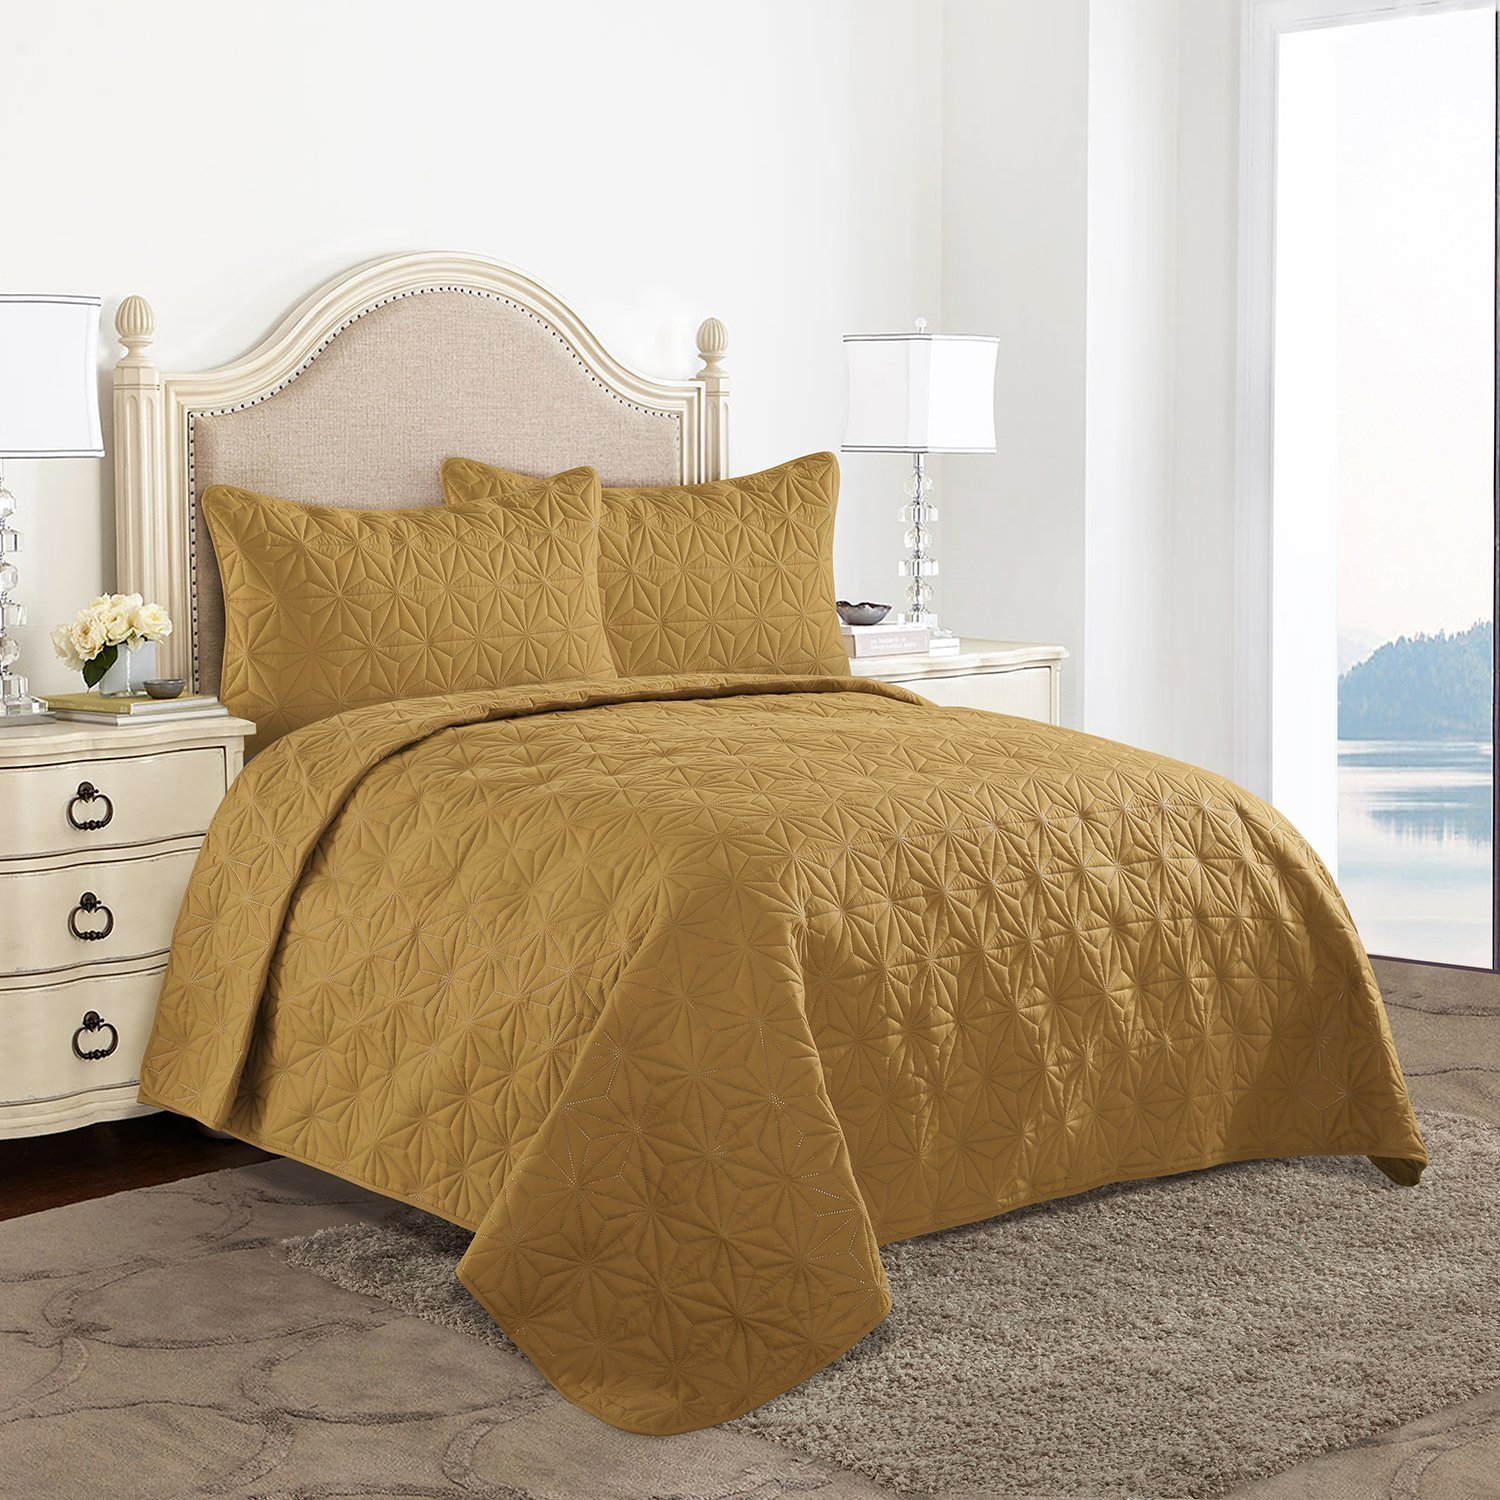 HollyHOME Snowflake Quilt Set Collection, Solid Lightweight Hypoallergenic Microfiber, 3 Pieces King Size Quilt, Golden Yellow